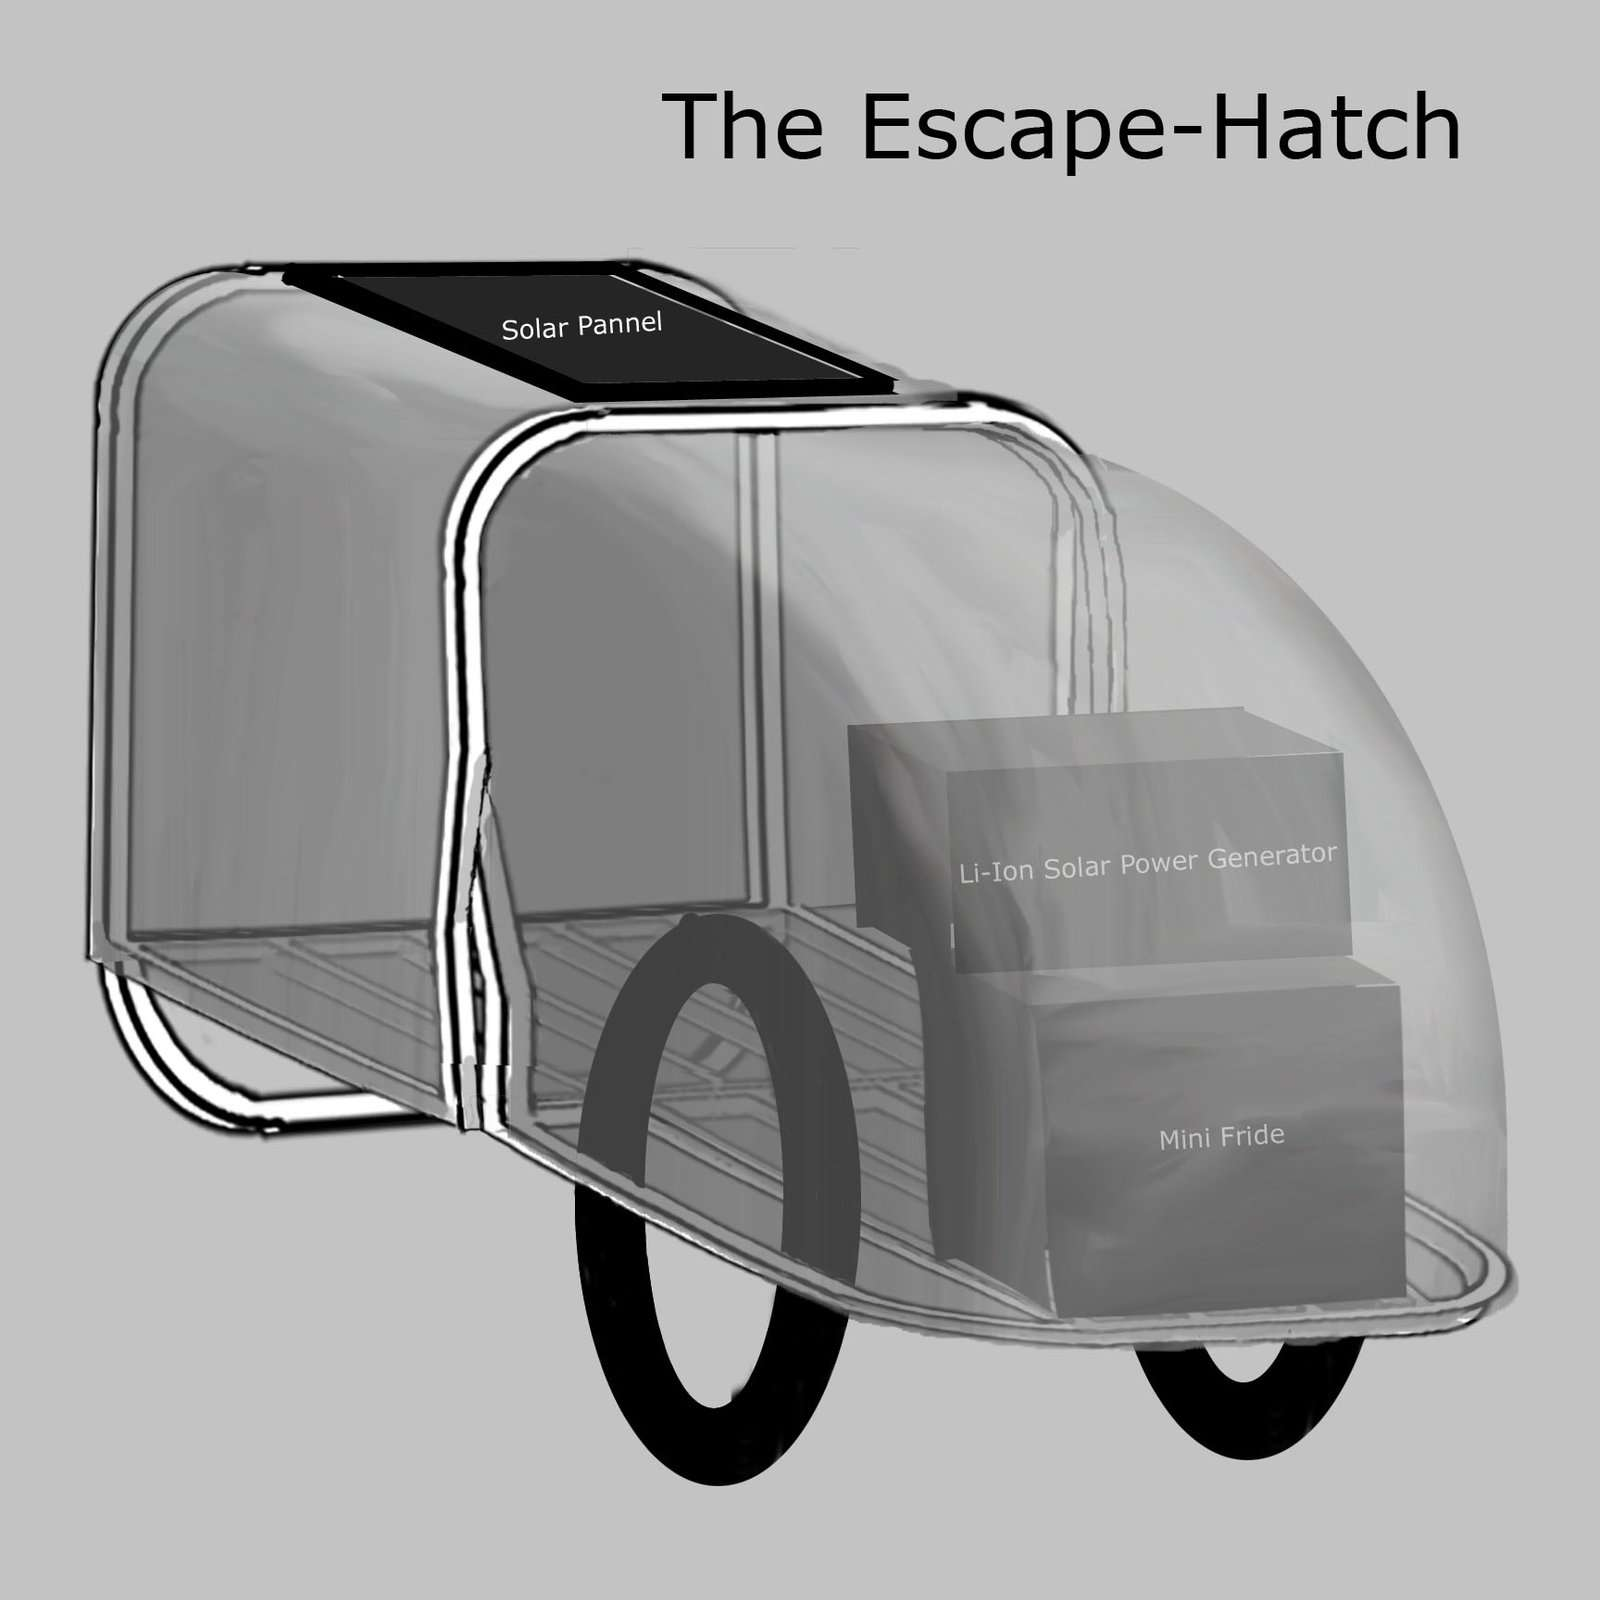 TheEscape-Hatch.